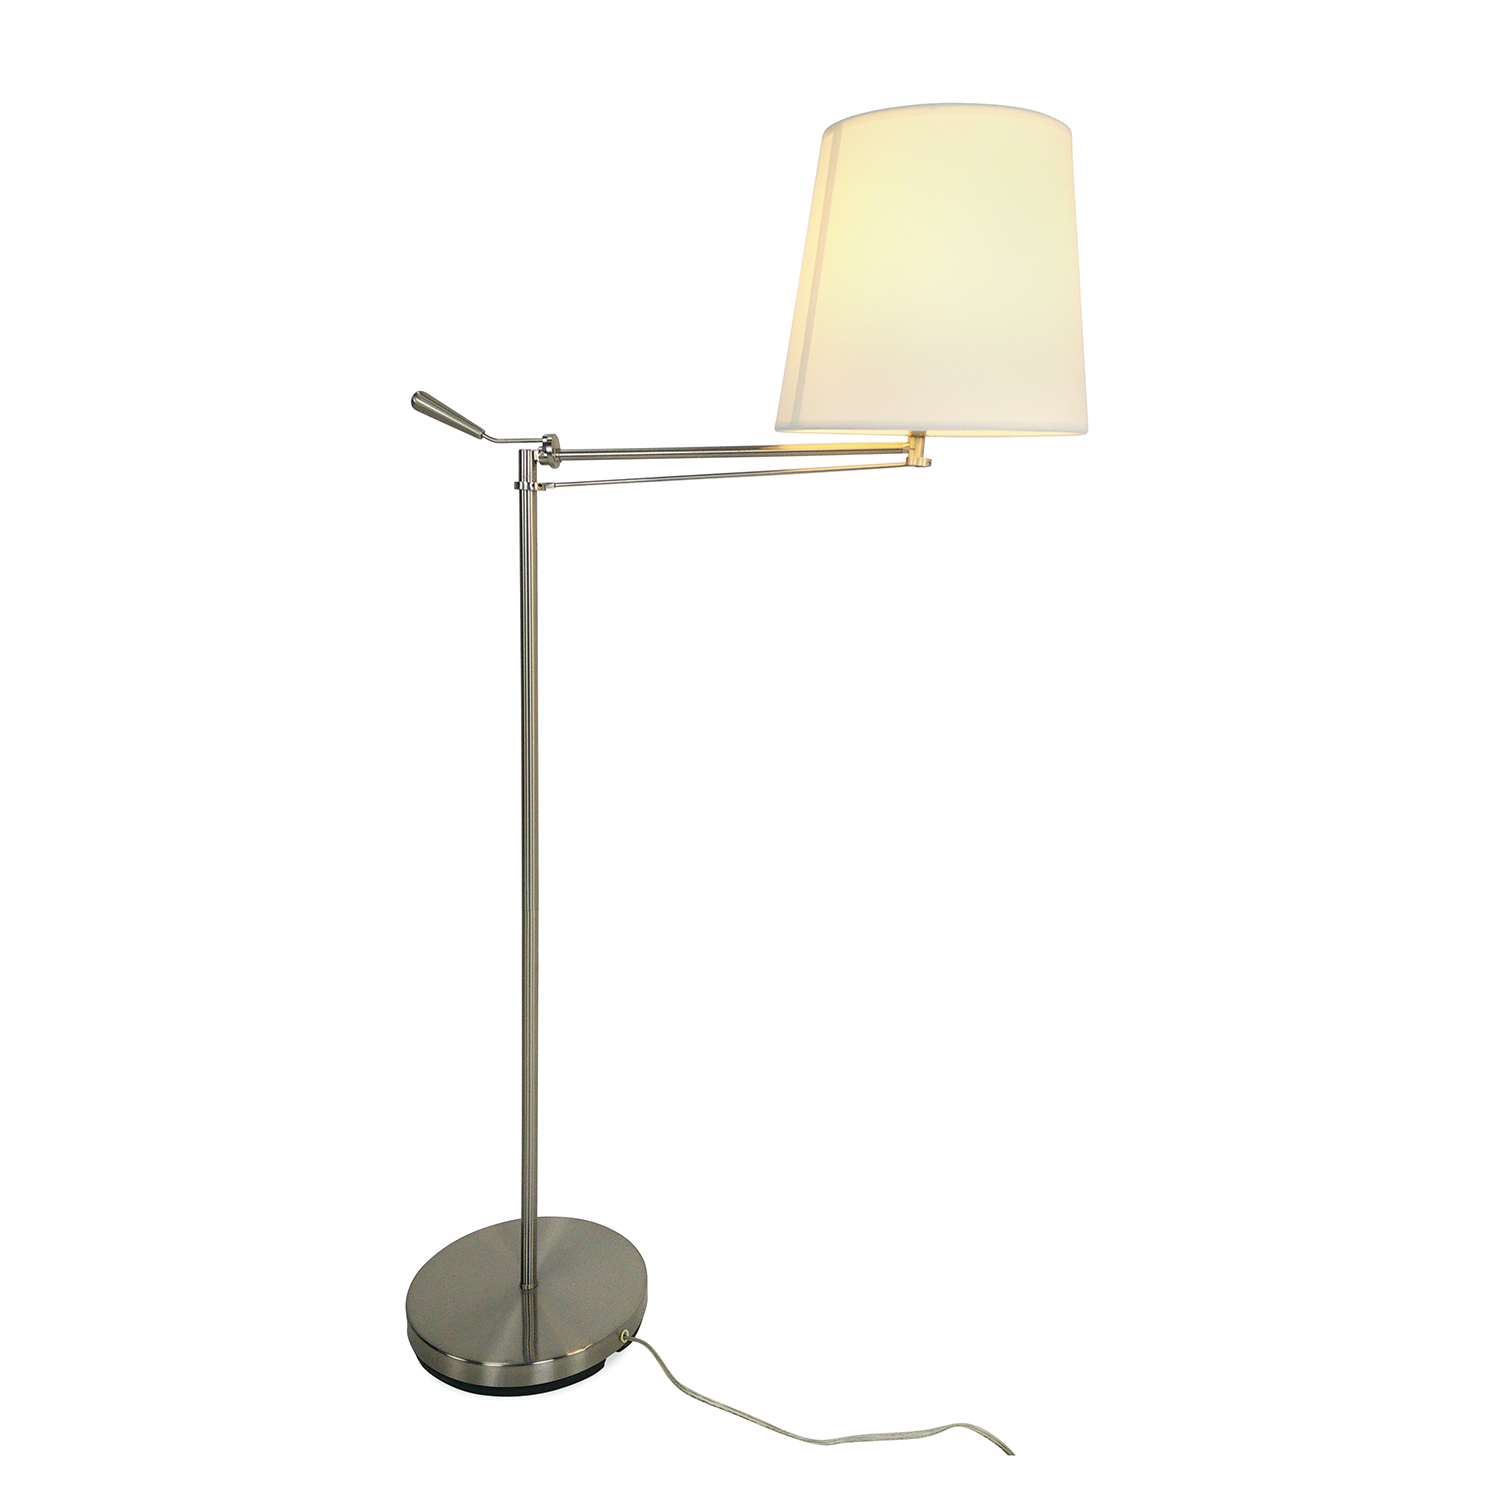 shop Unknown Brand Adjustable Floor Lamp online